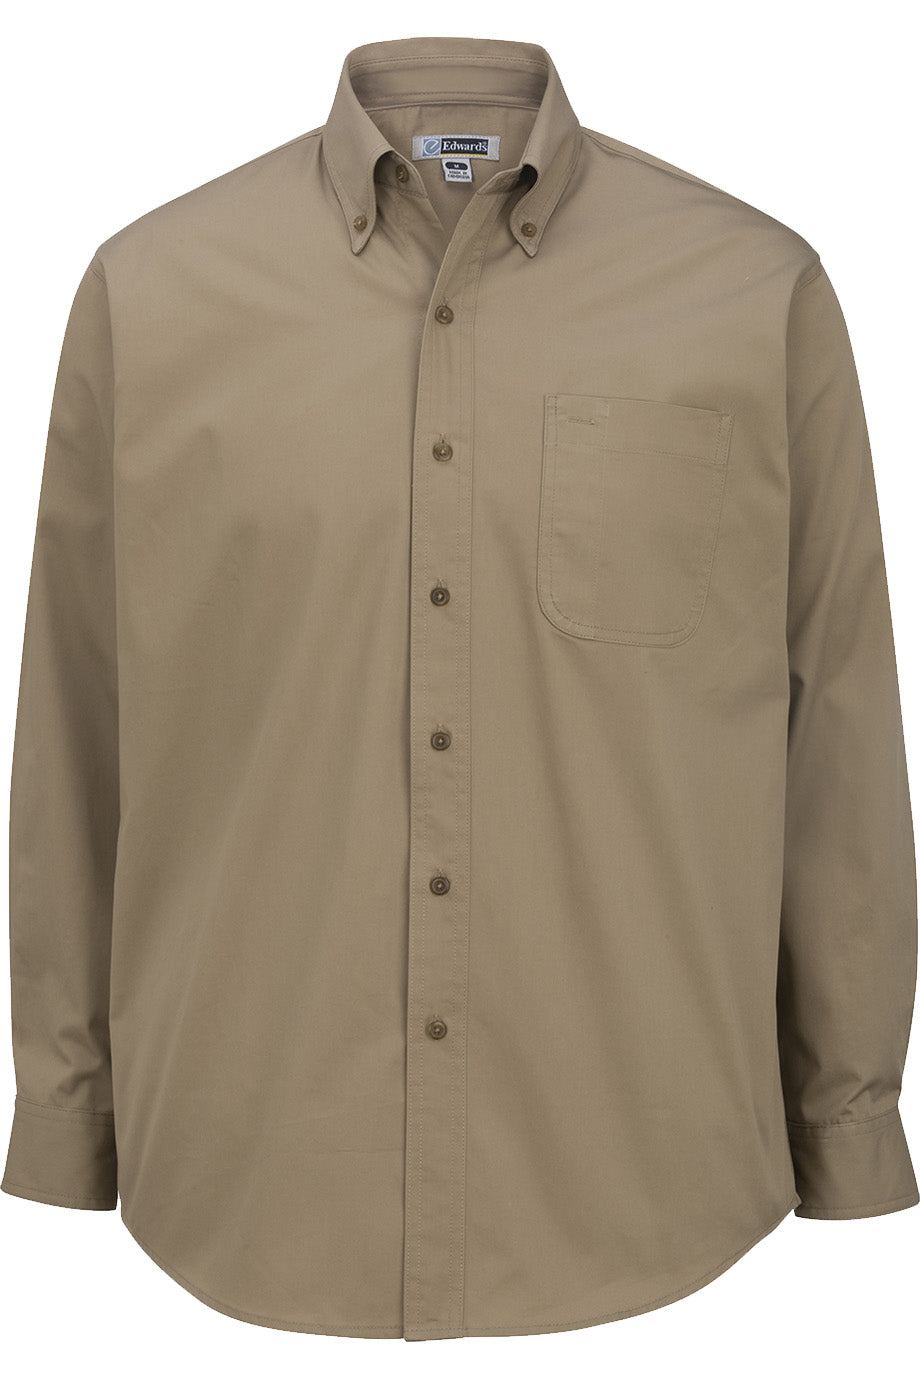 Edwards Mens Cottonplus Long Sleeve Twill Shirt